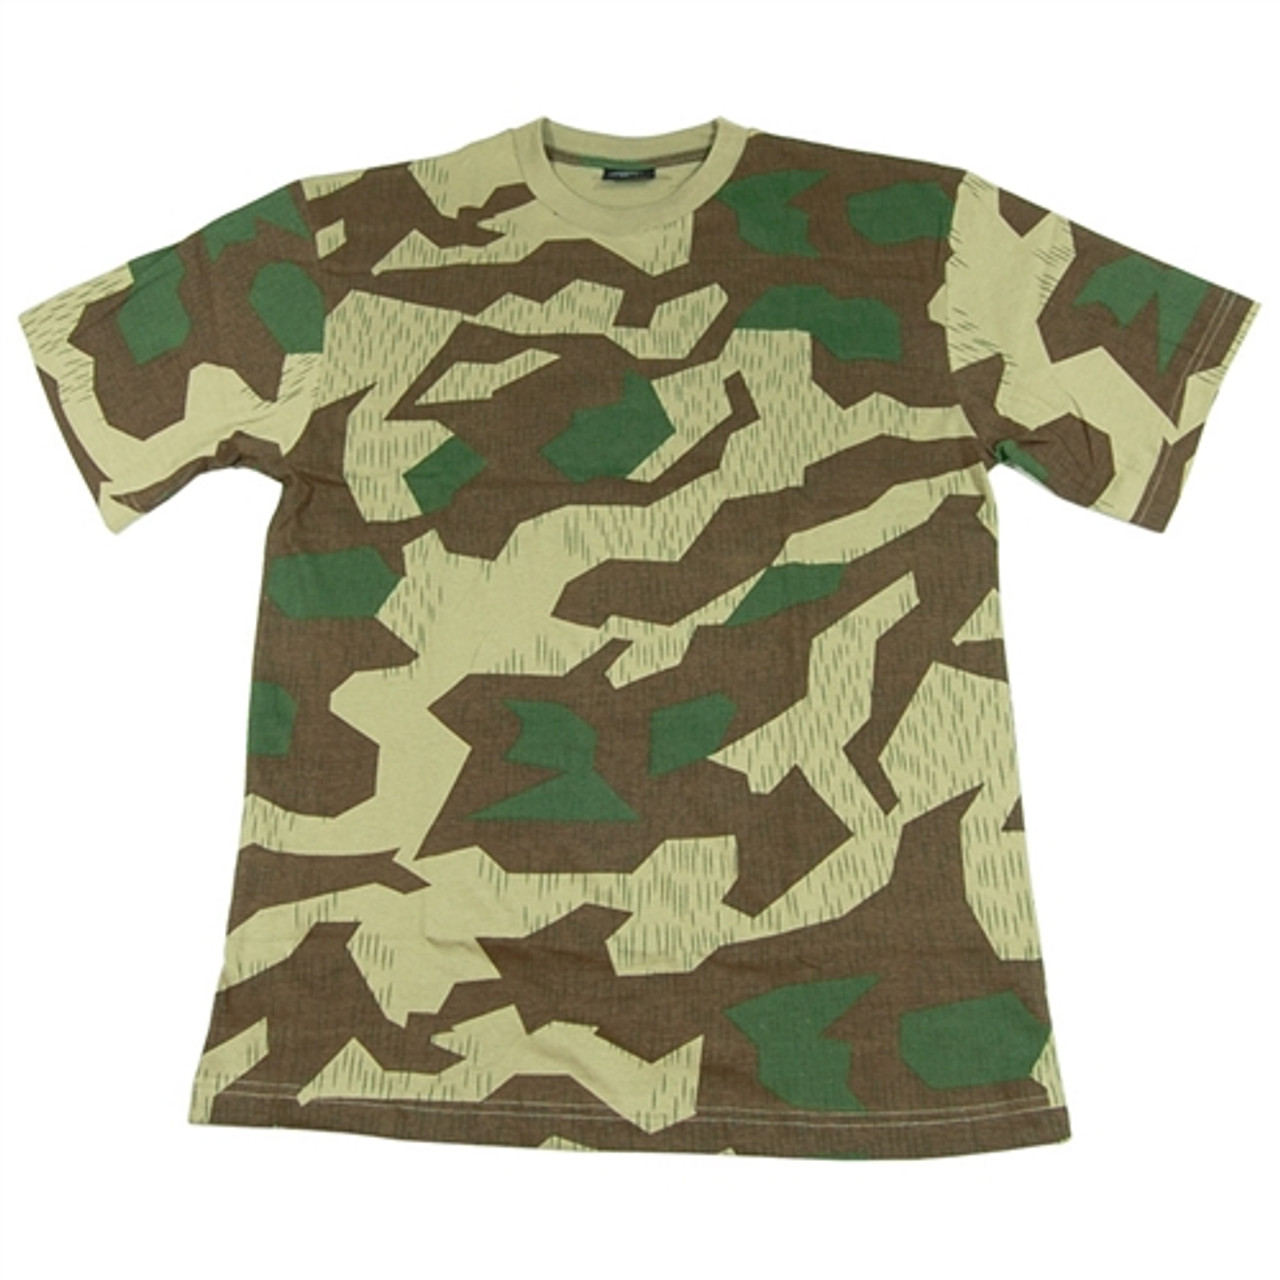 MIL-TEC Danish Army Flecktarn Camo T-Shirt from Hessen Surplus